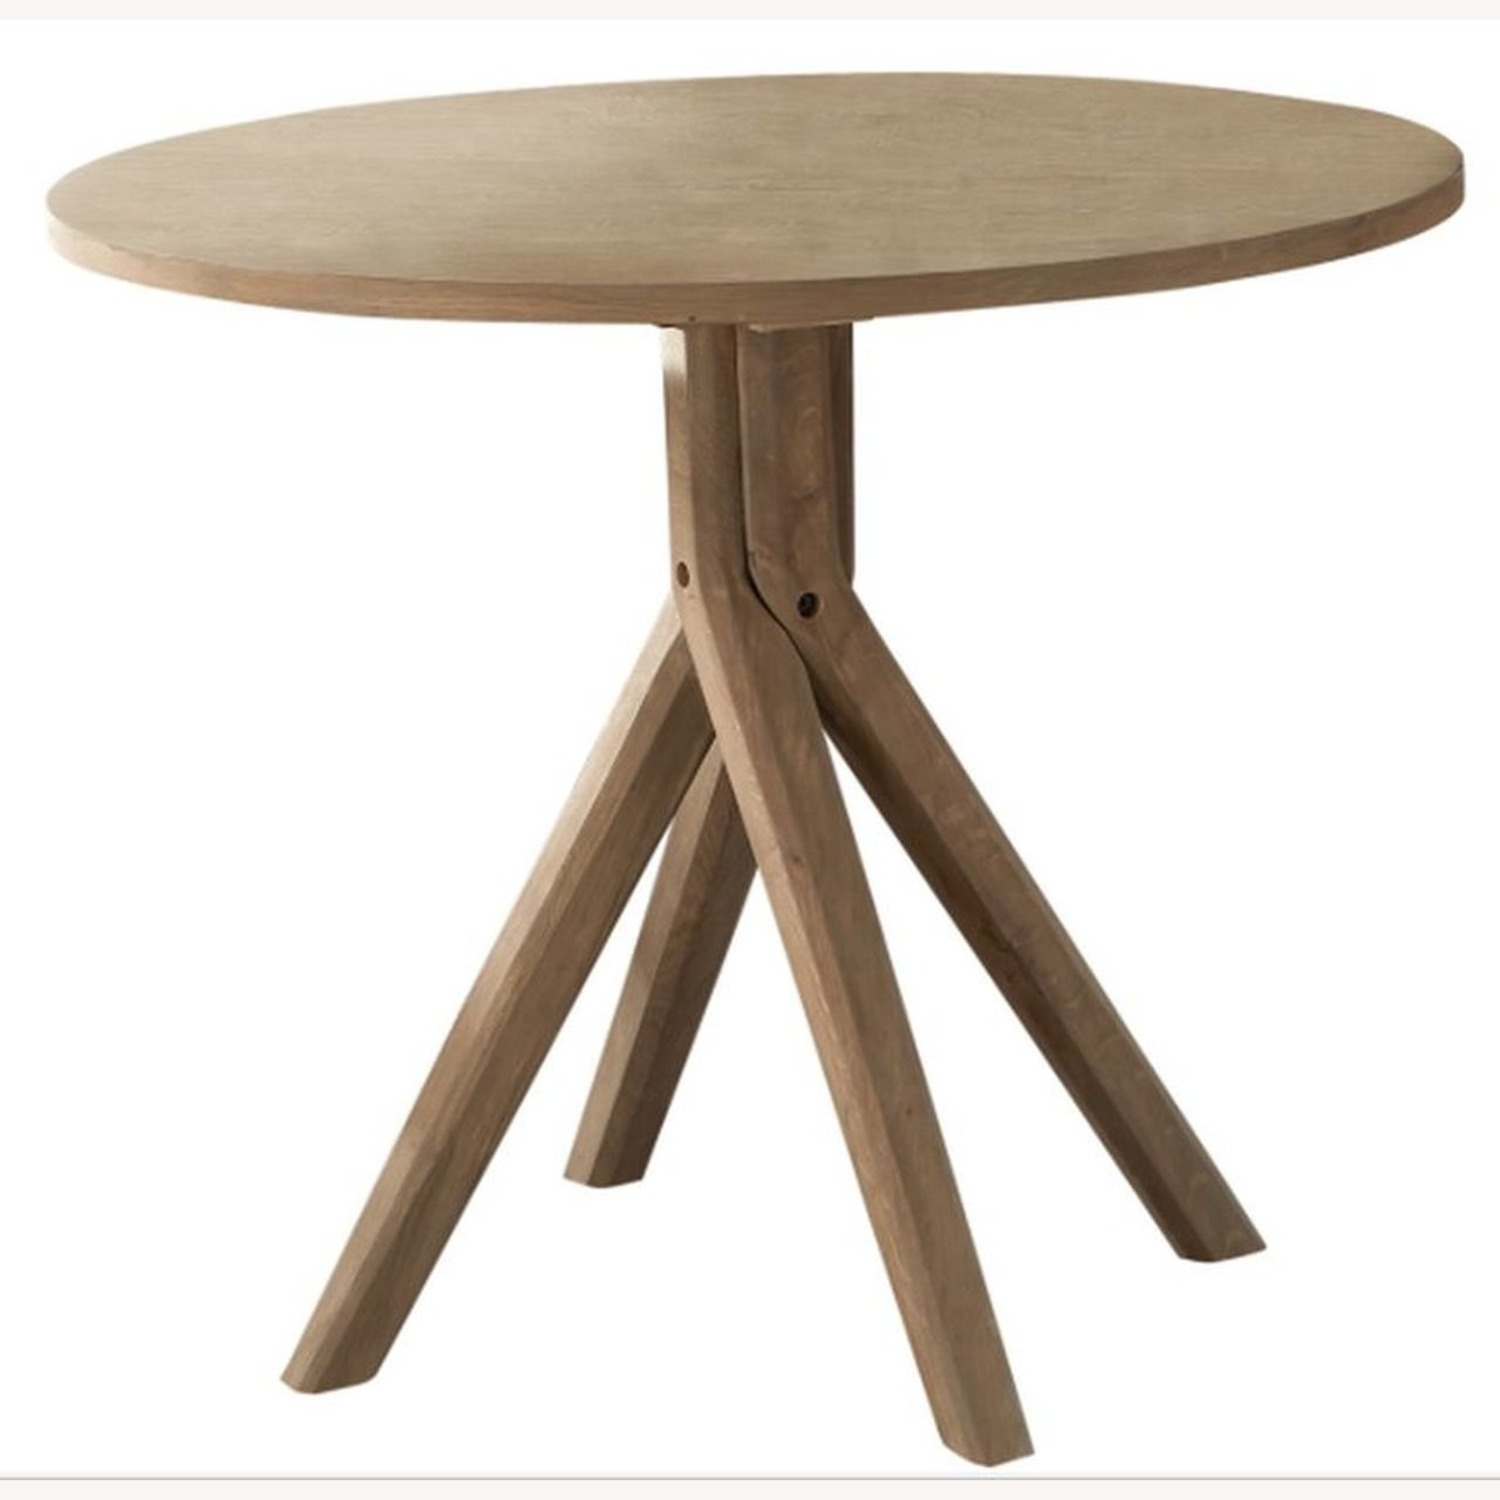 Classic Round Dining Table In Solid White Oak - image-0